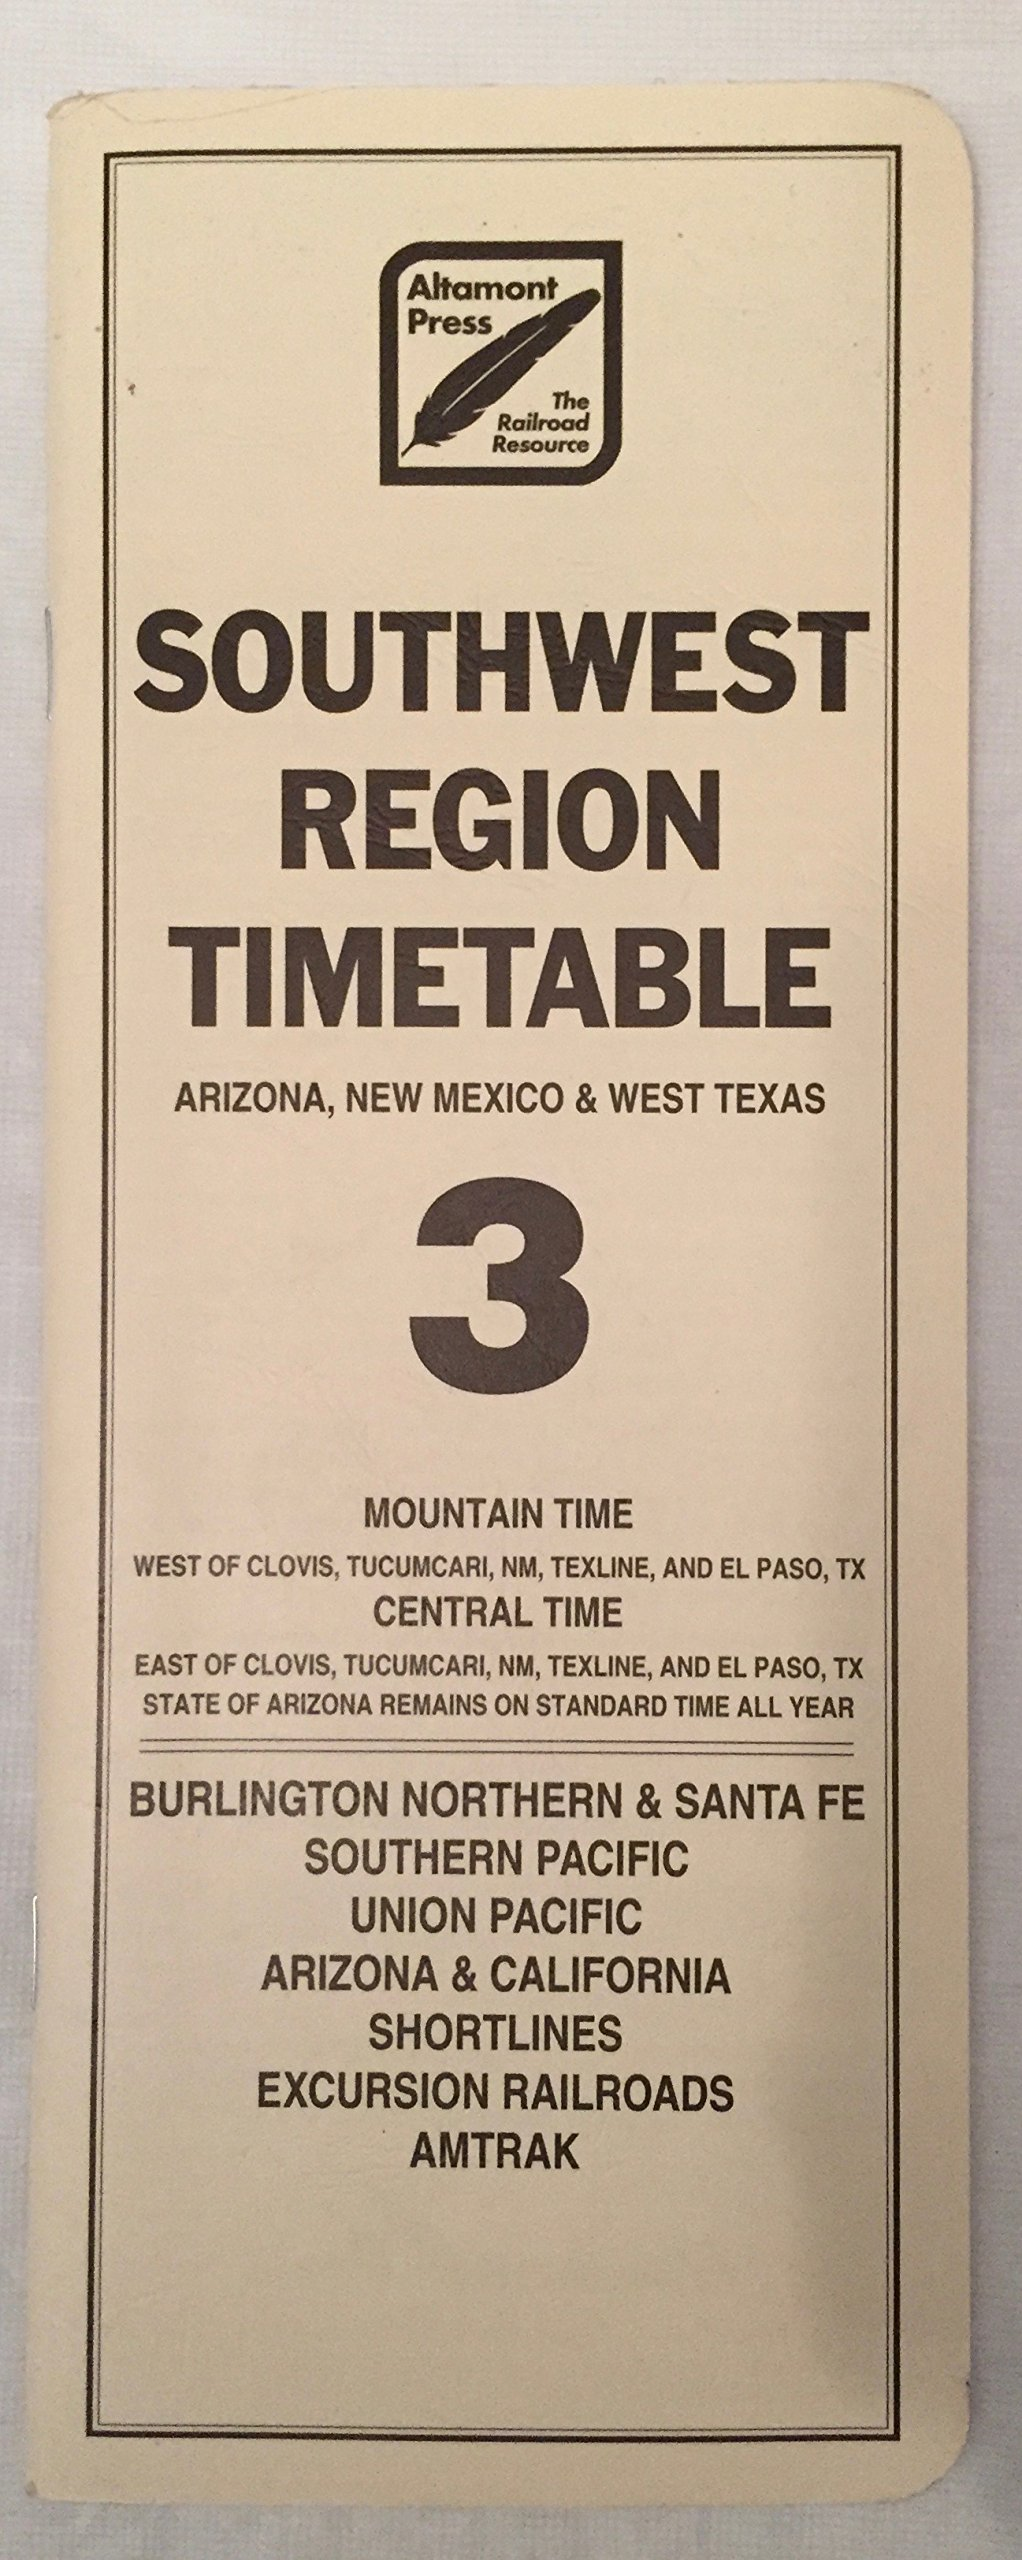 southwest region timetable 3 arizona new mexico and west texas for the burlington northern santa fe etc effective february 2 1997 rob carlson bill farmer amazon com books amazon com